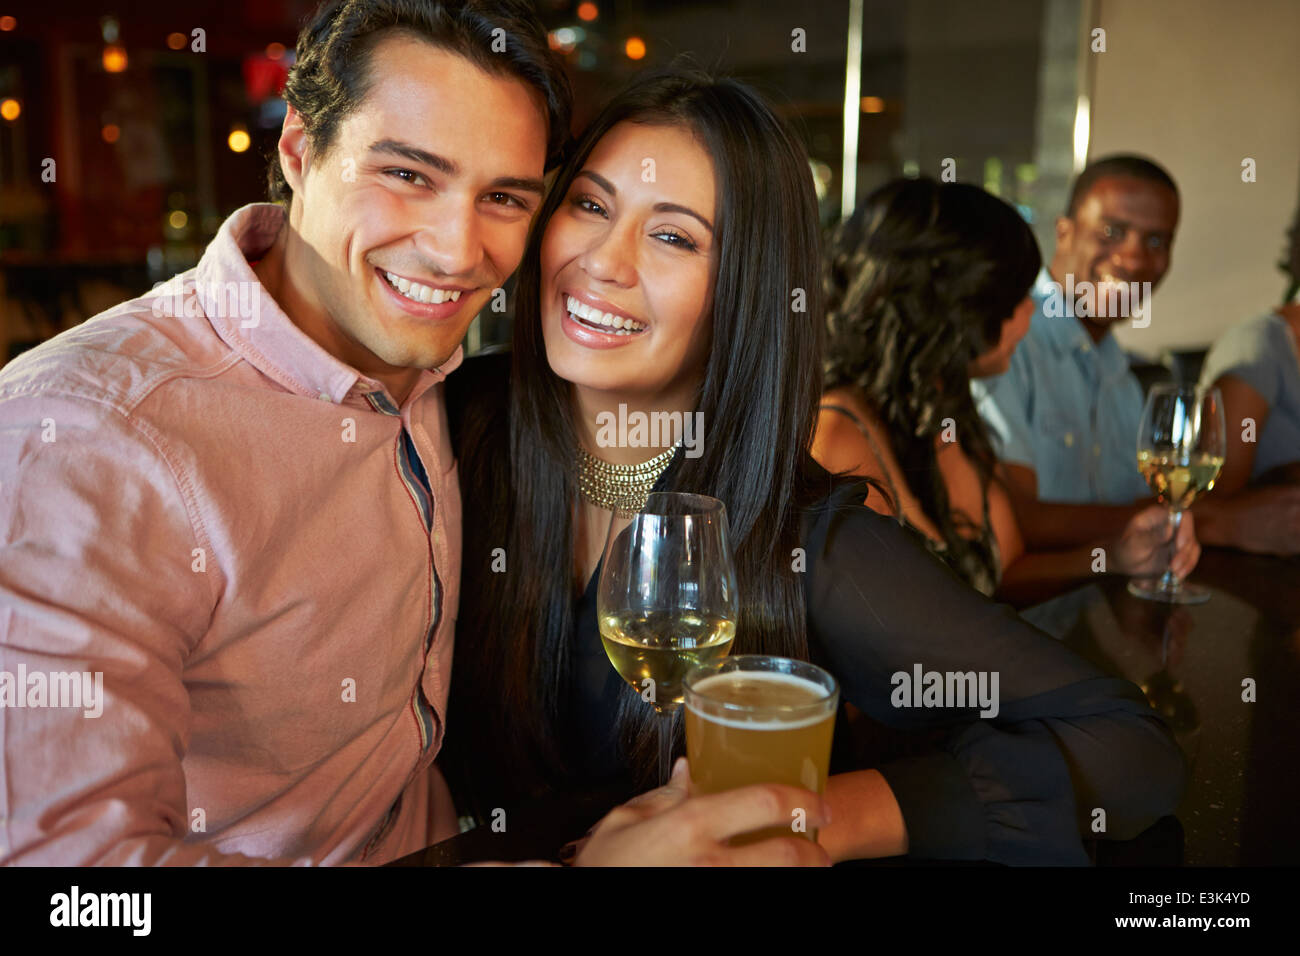 Couple Enjoying Drink At Bar With Friends - Stock Image